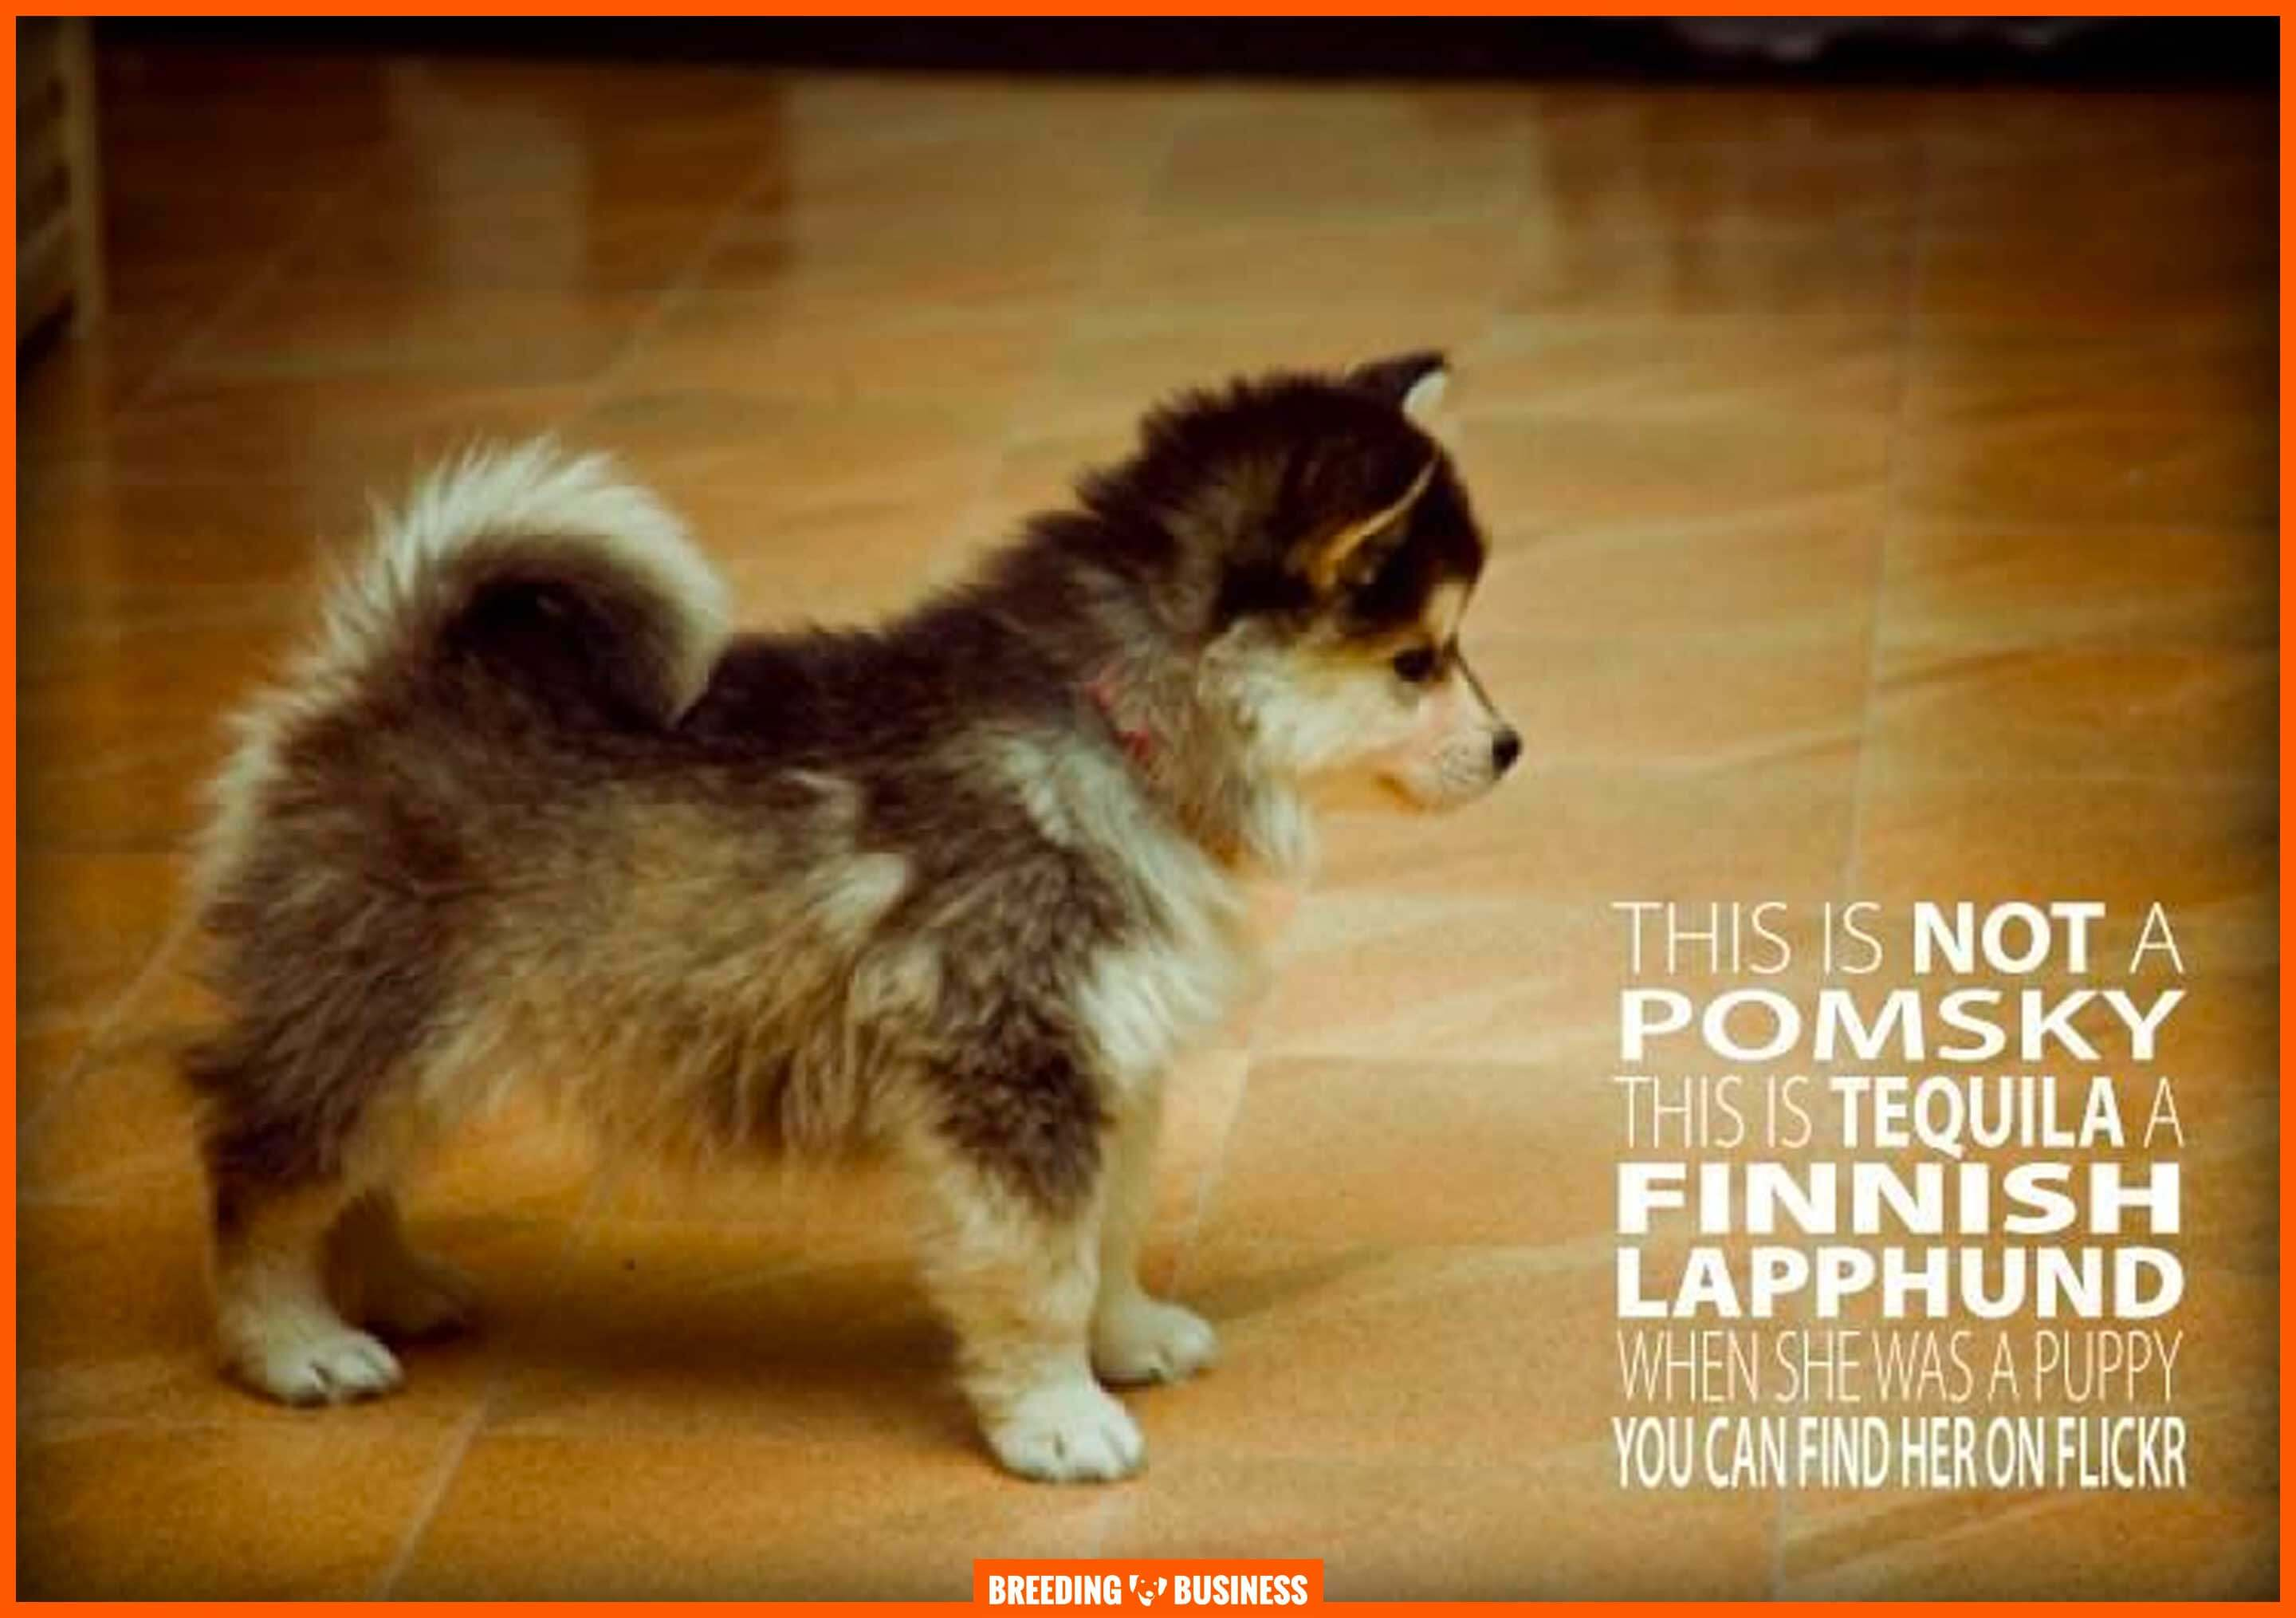 pomsky vs finnish lapphund